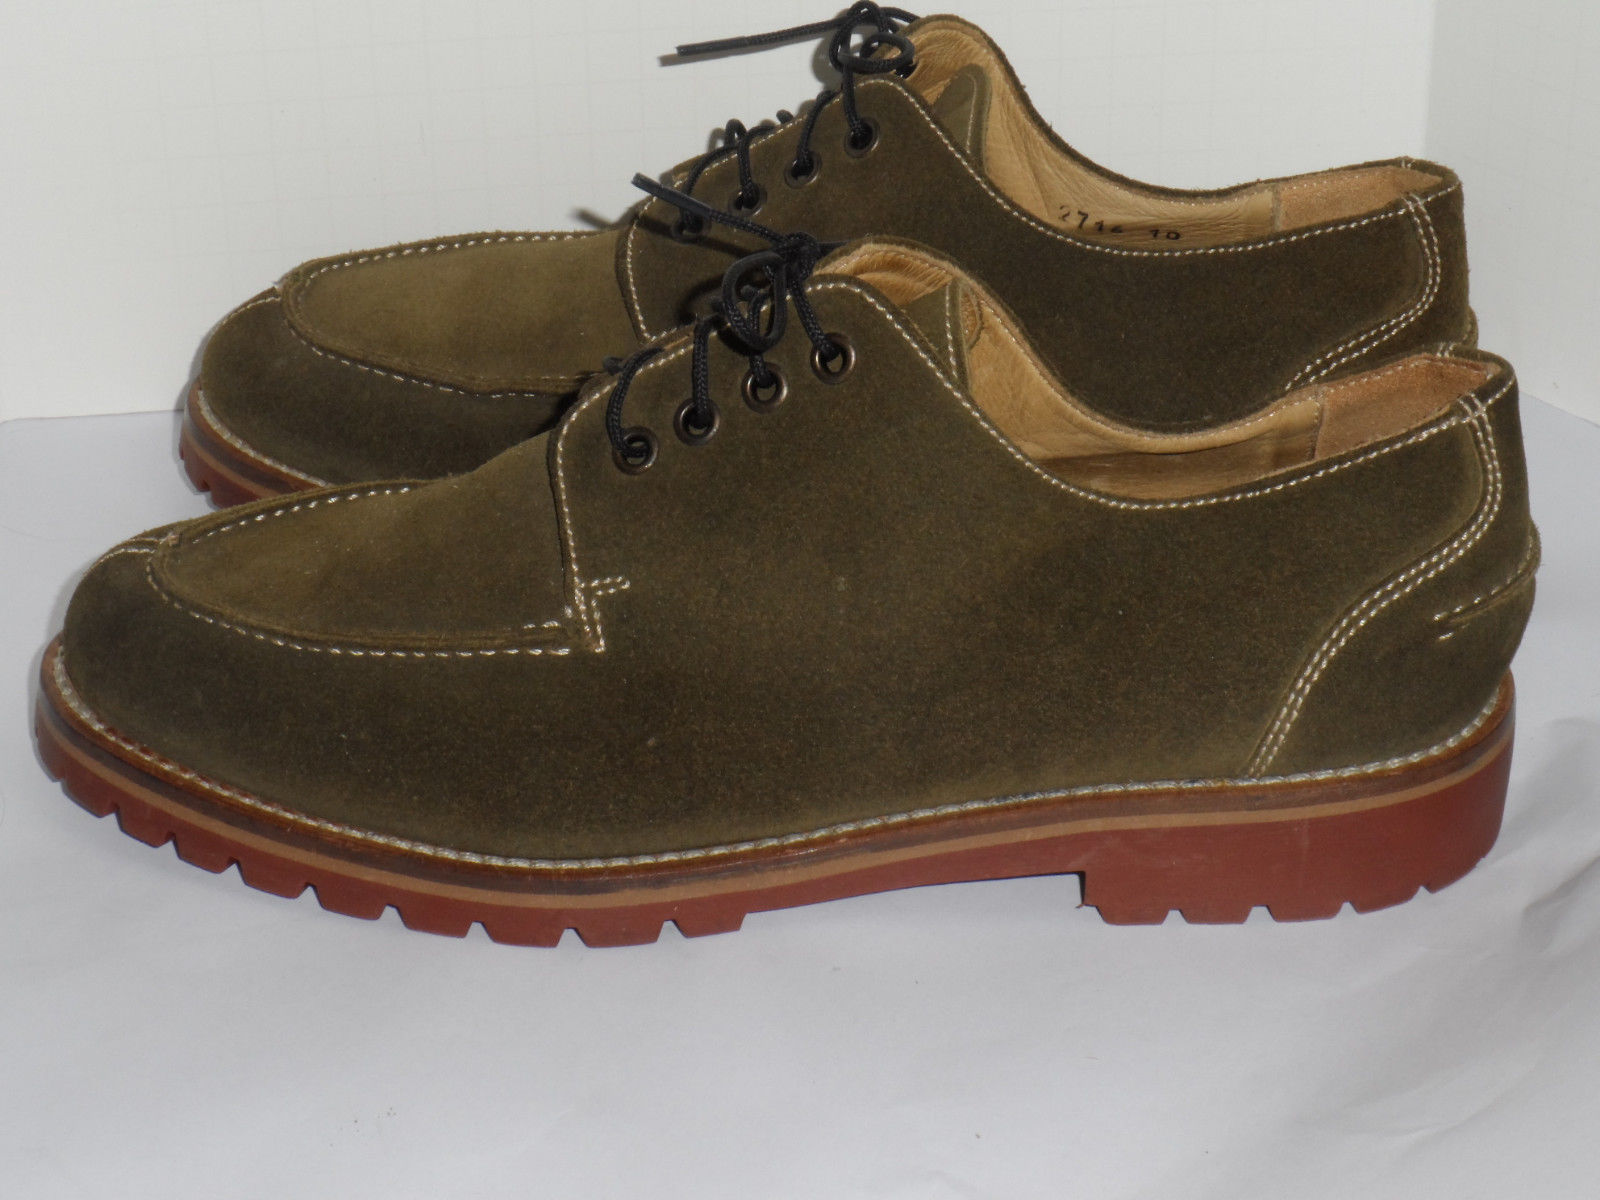 Adam Derrick To Boot Ny Shoes Classic Vintage Apparel